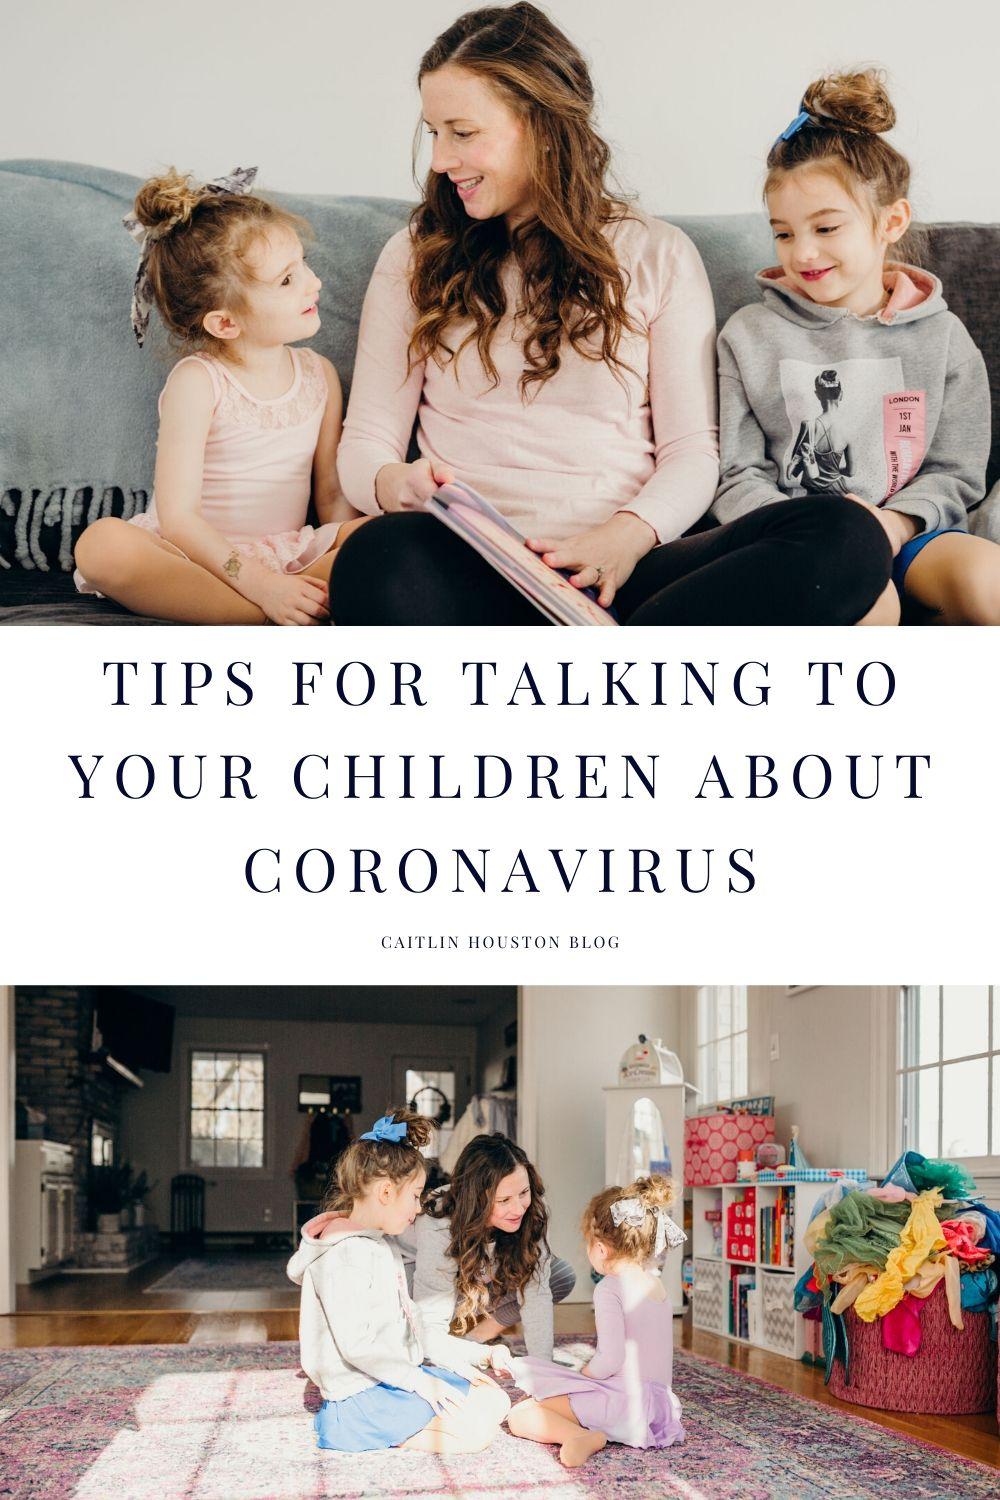 Tips for Talking to Your Child about Coronavirus - This post shares ways to help your child cope with life changes due to the pandemic.